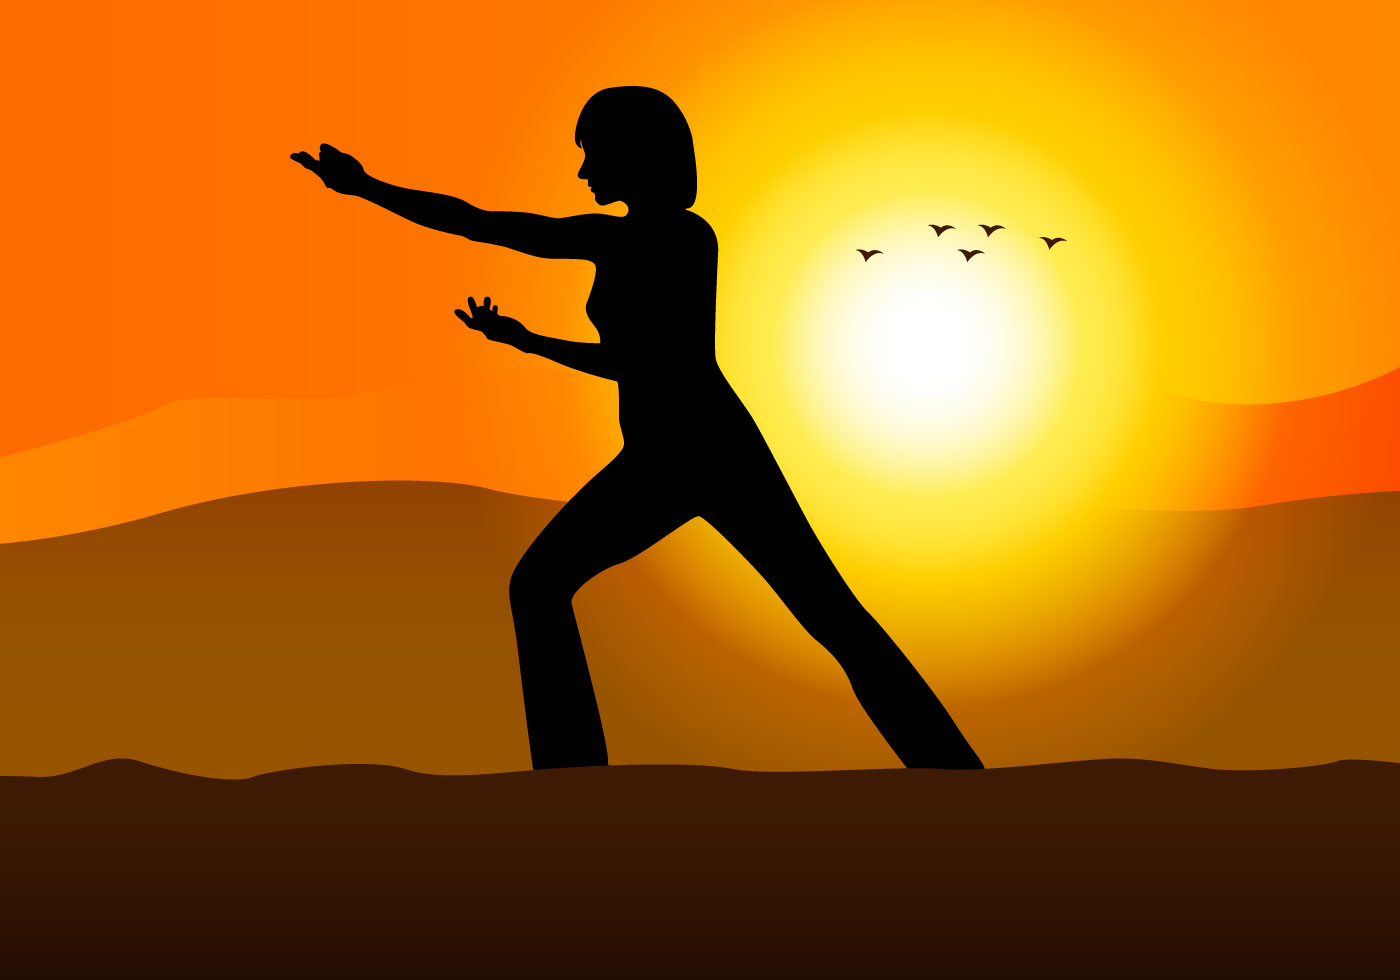 Tai Chi Stock Images - Download 3 Royalty Free Photos